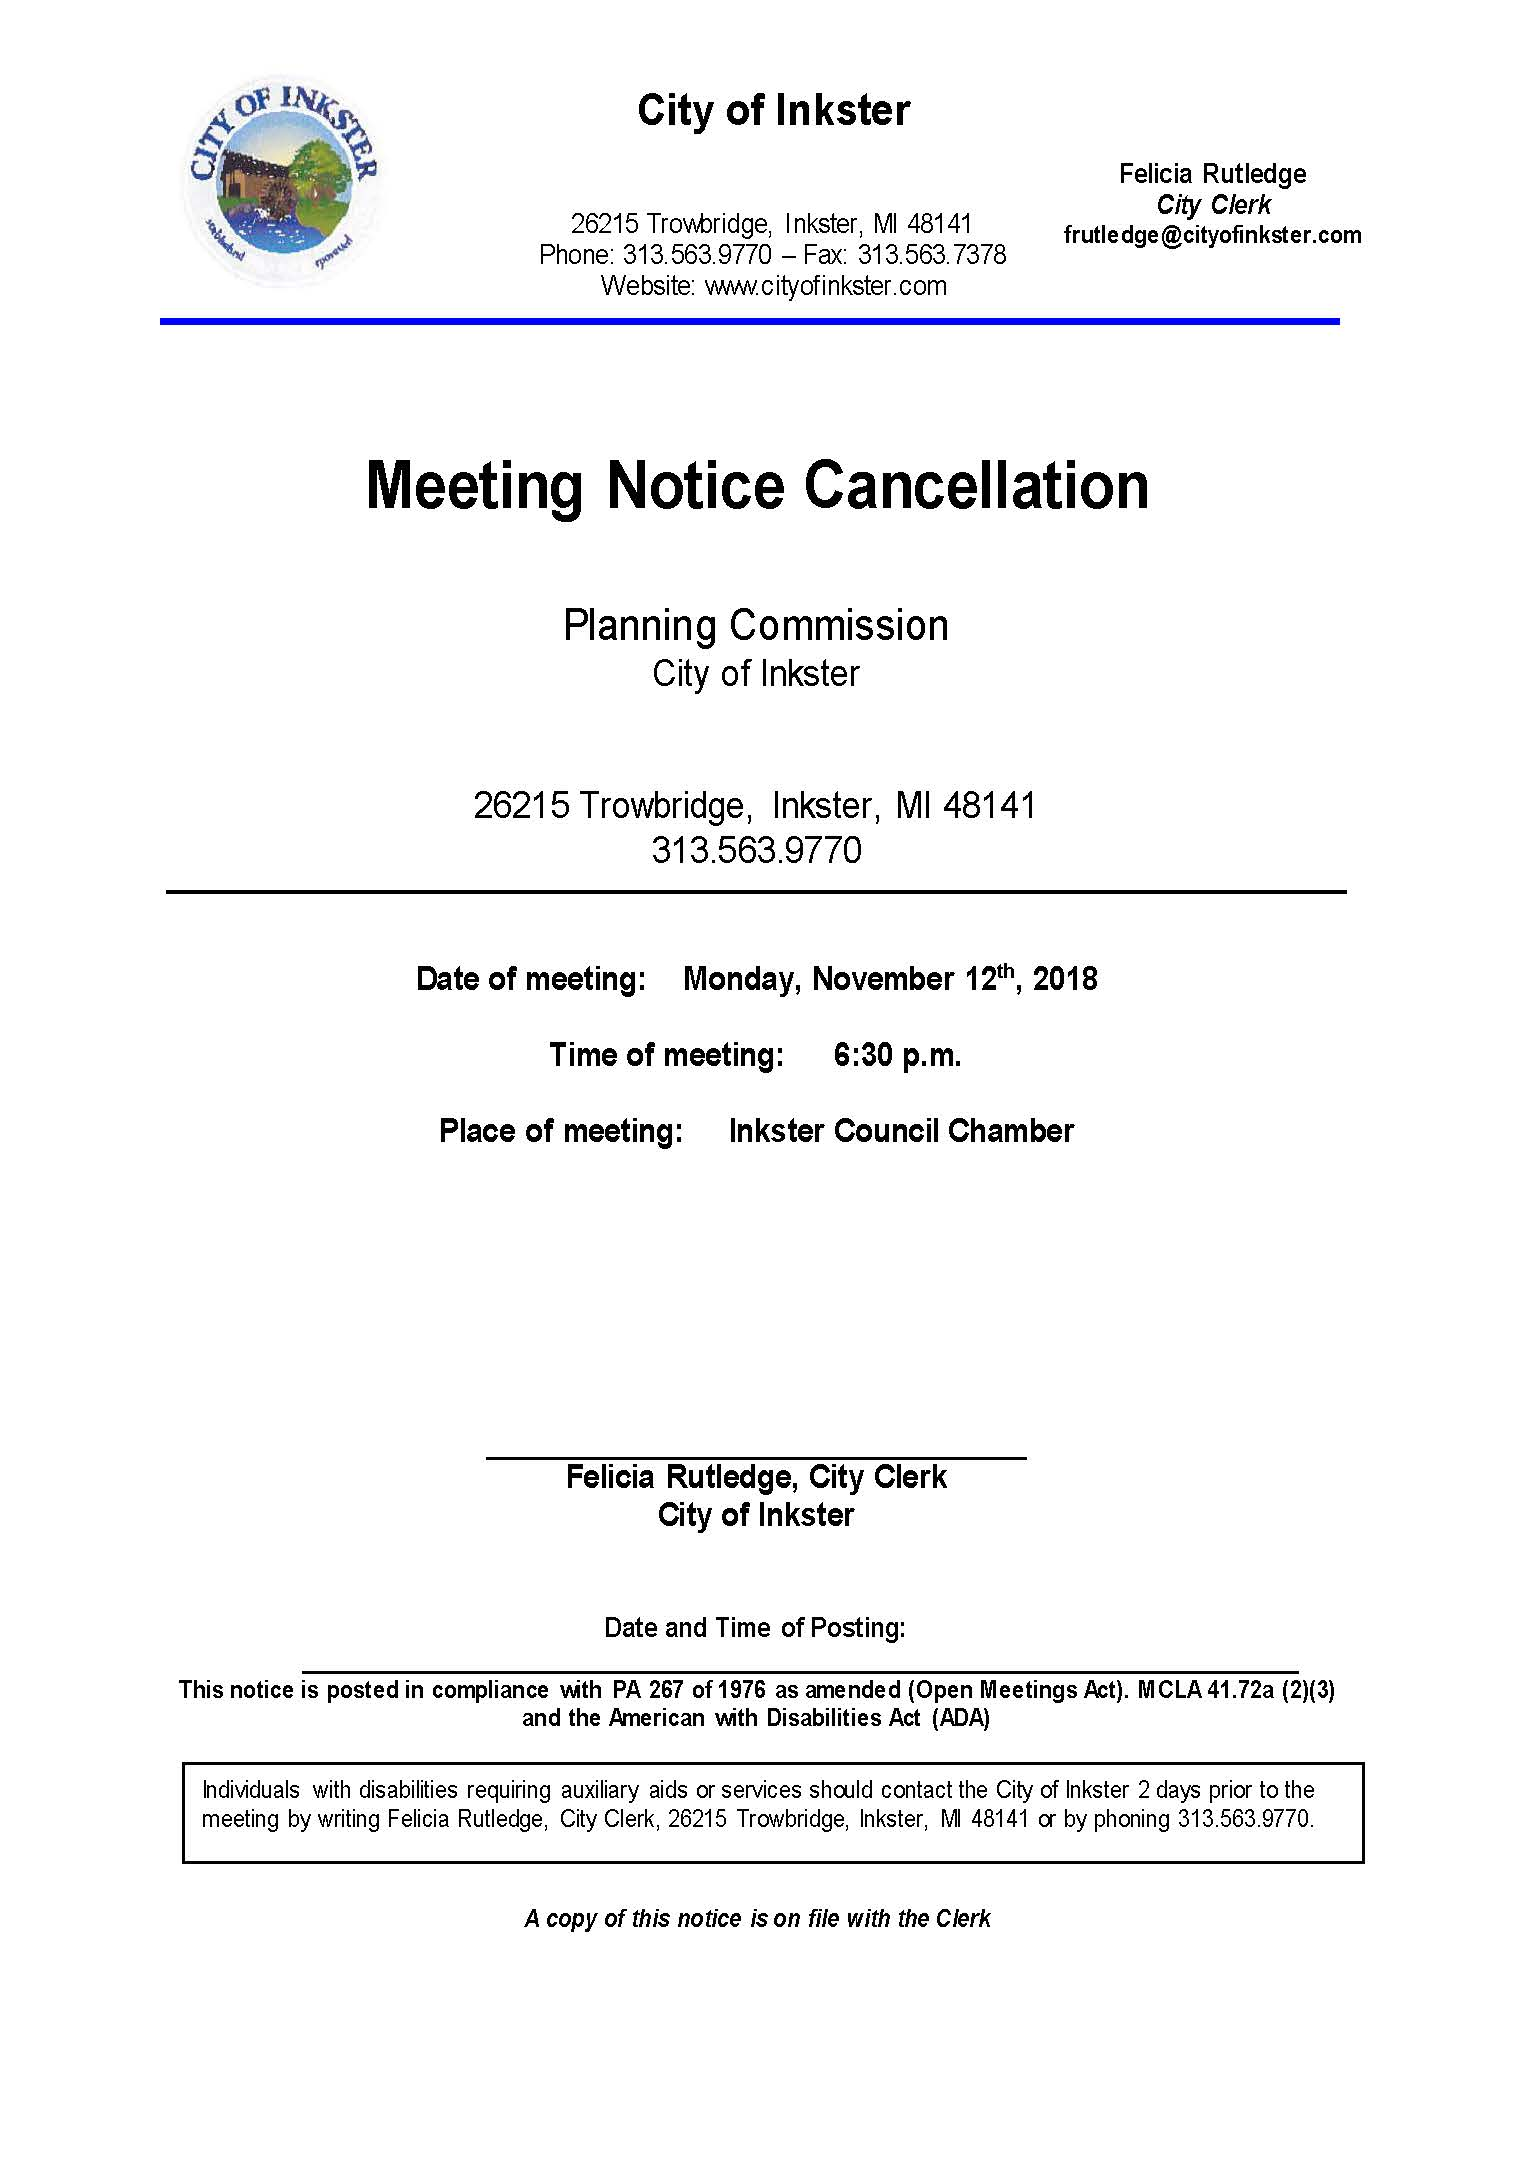 Planning Commission Cancellation Notice November 12 2018